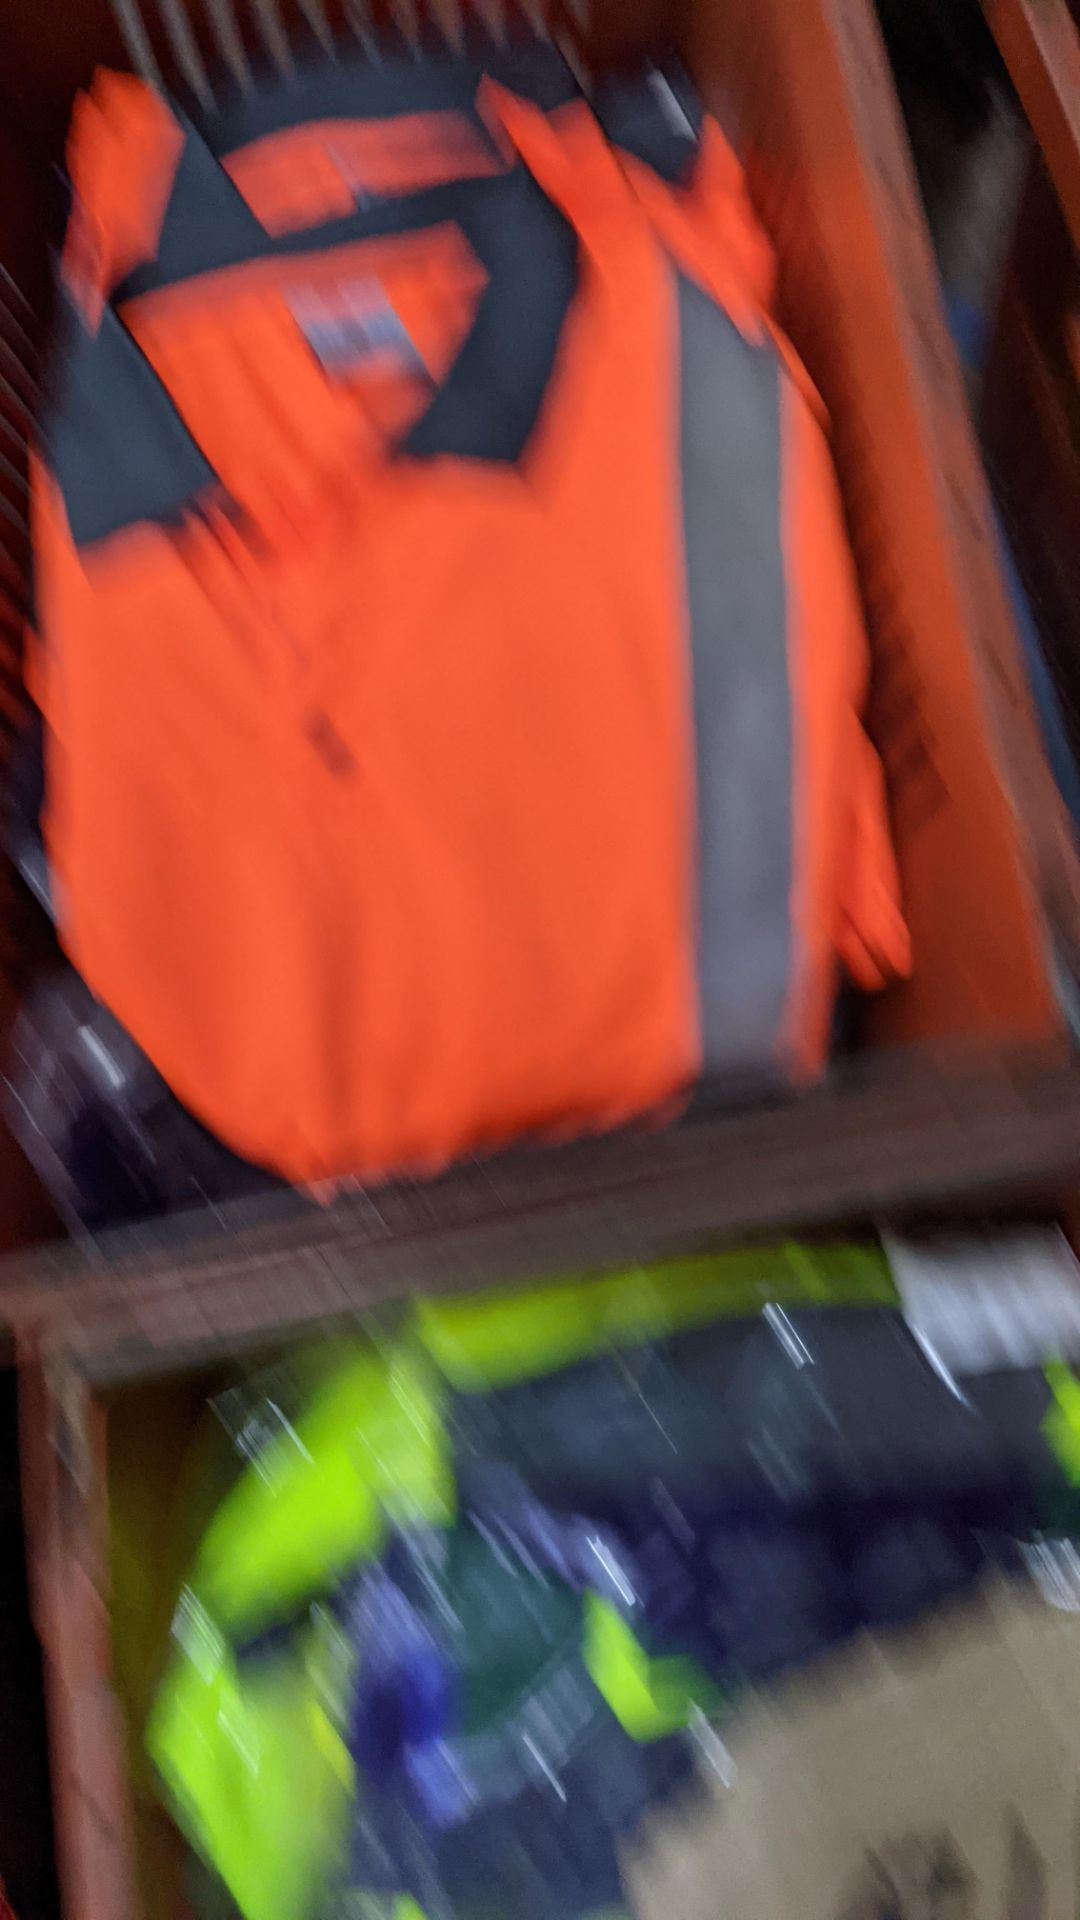 13 off hi-vis polo shirts (orange) - Image 3 of 4